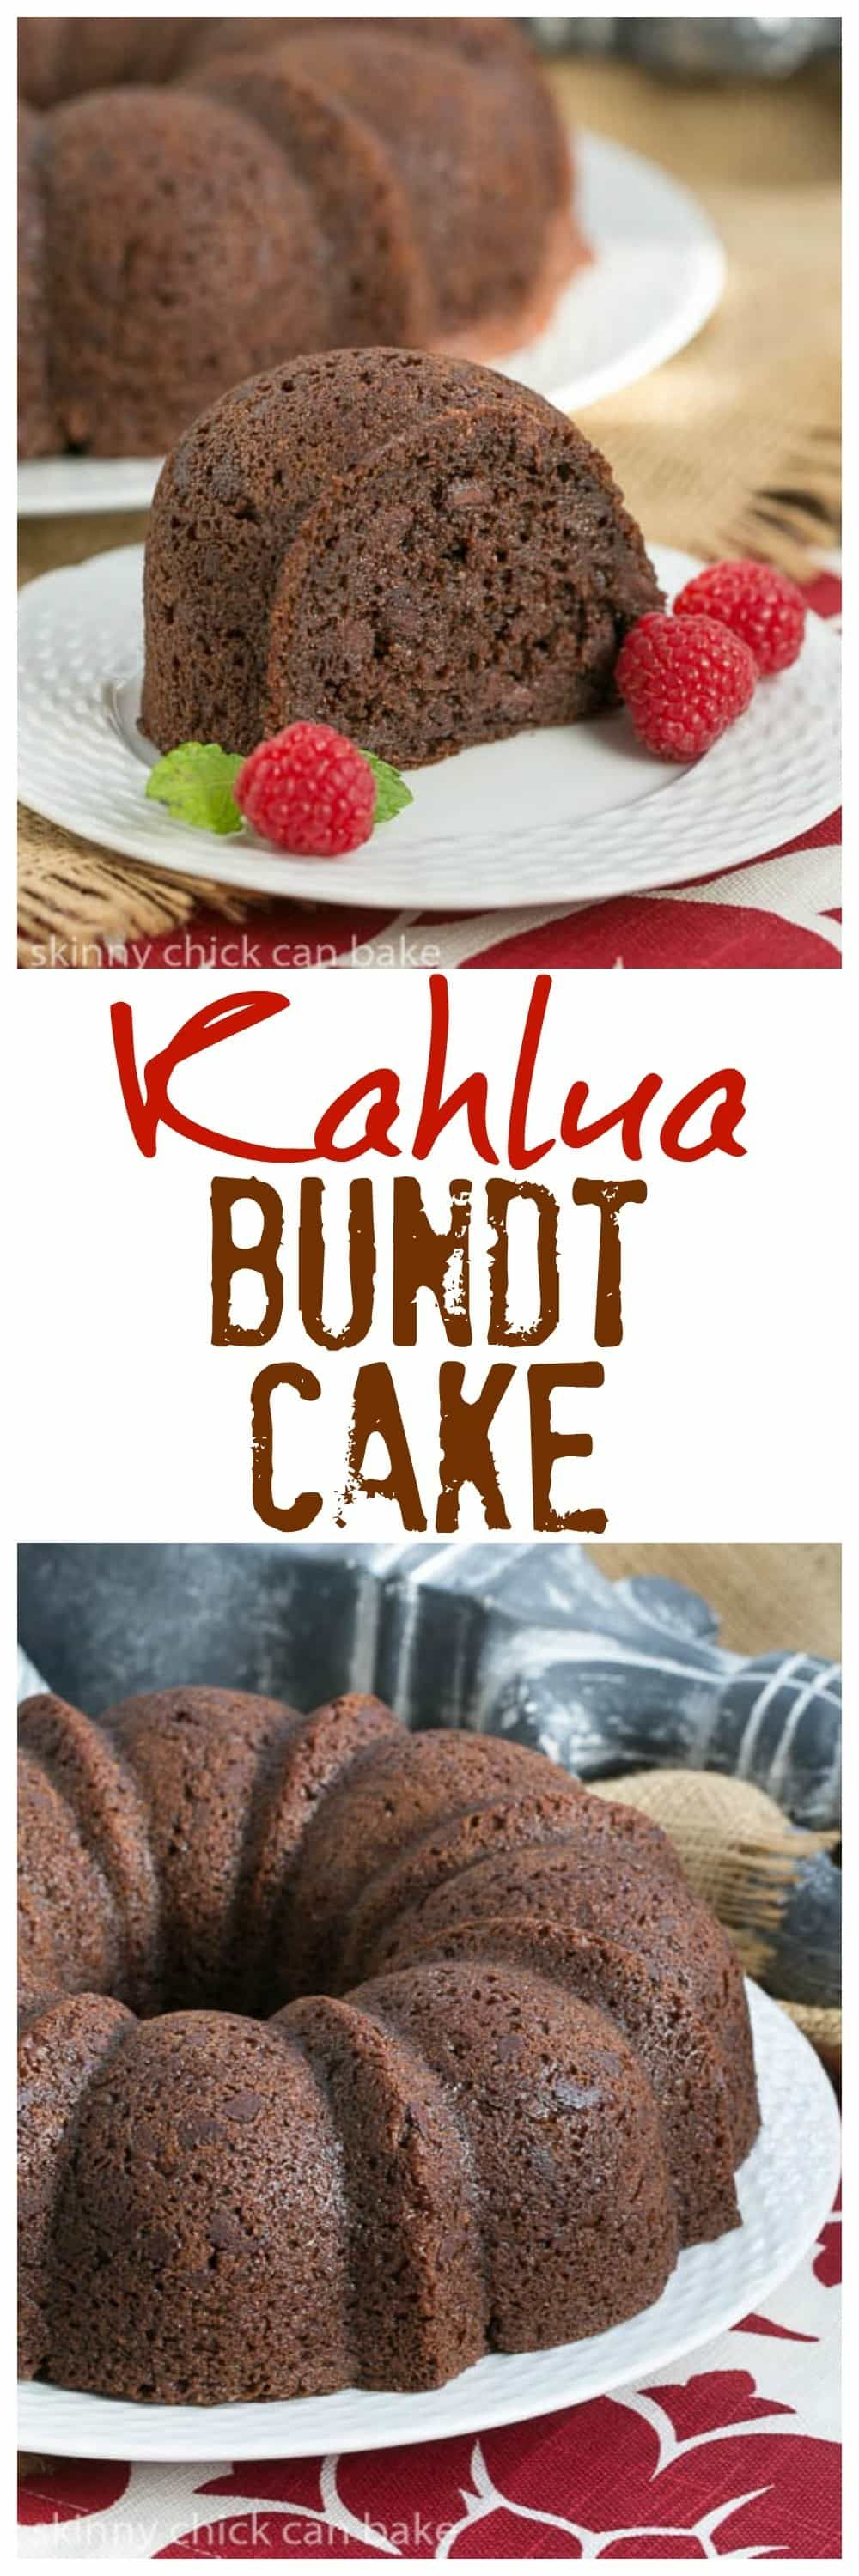 Kahlua Bundt Cake | A super easy, decadent chocolate cake! @lizzydo #easychocolatecake